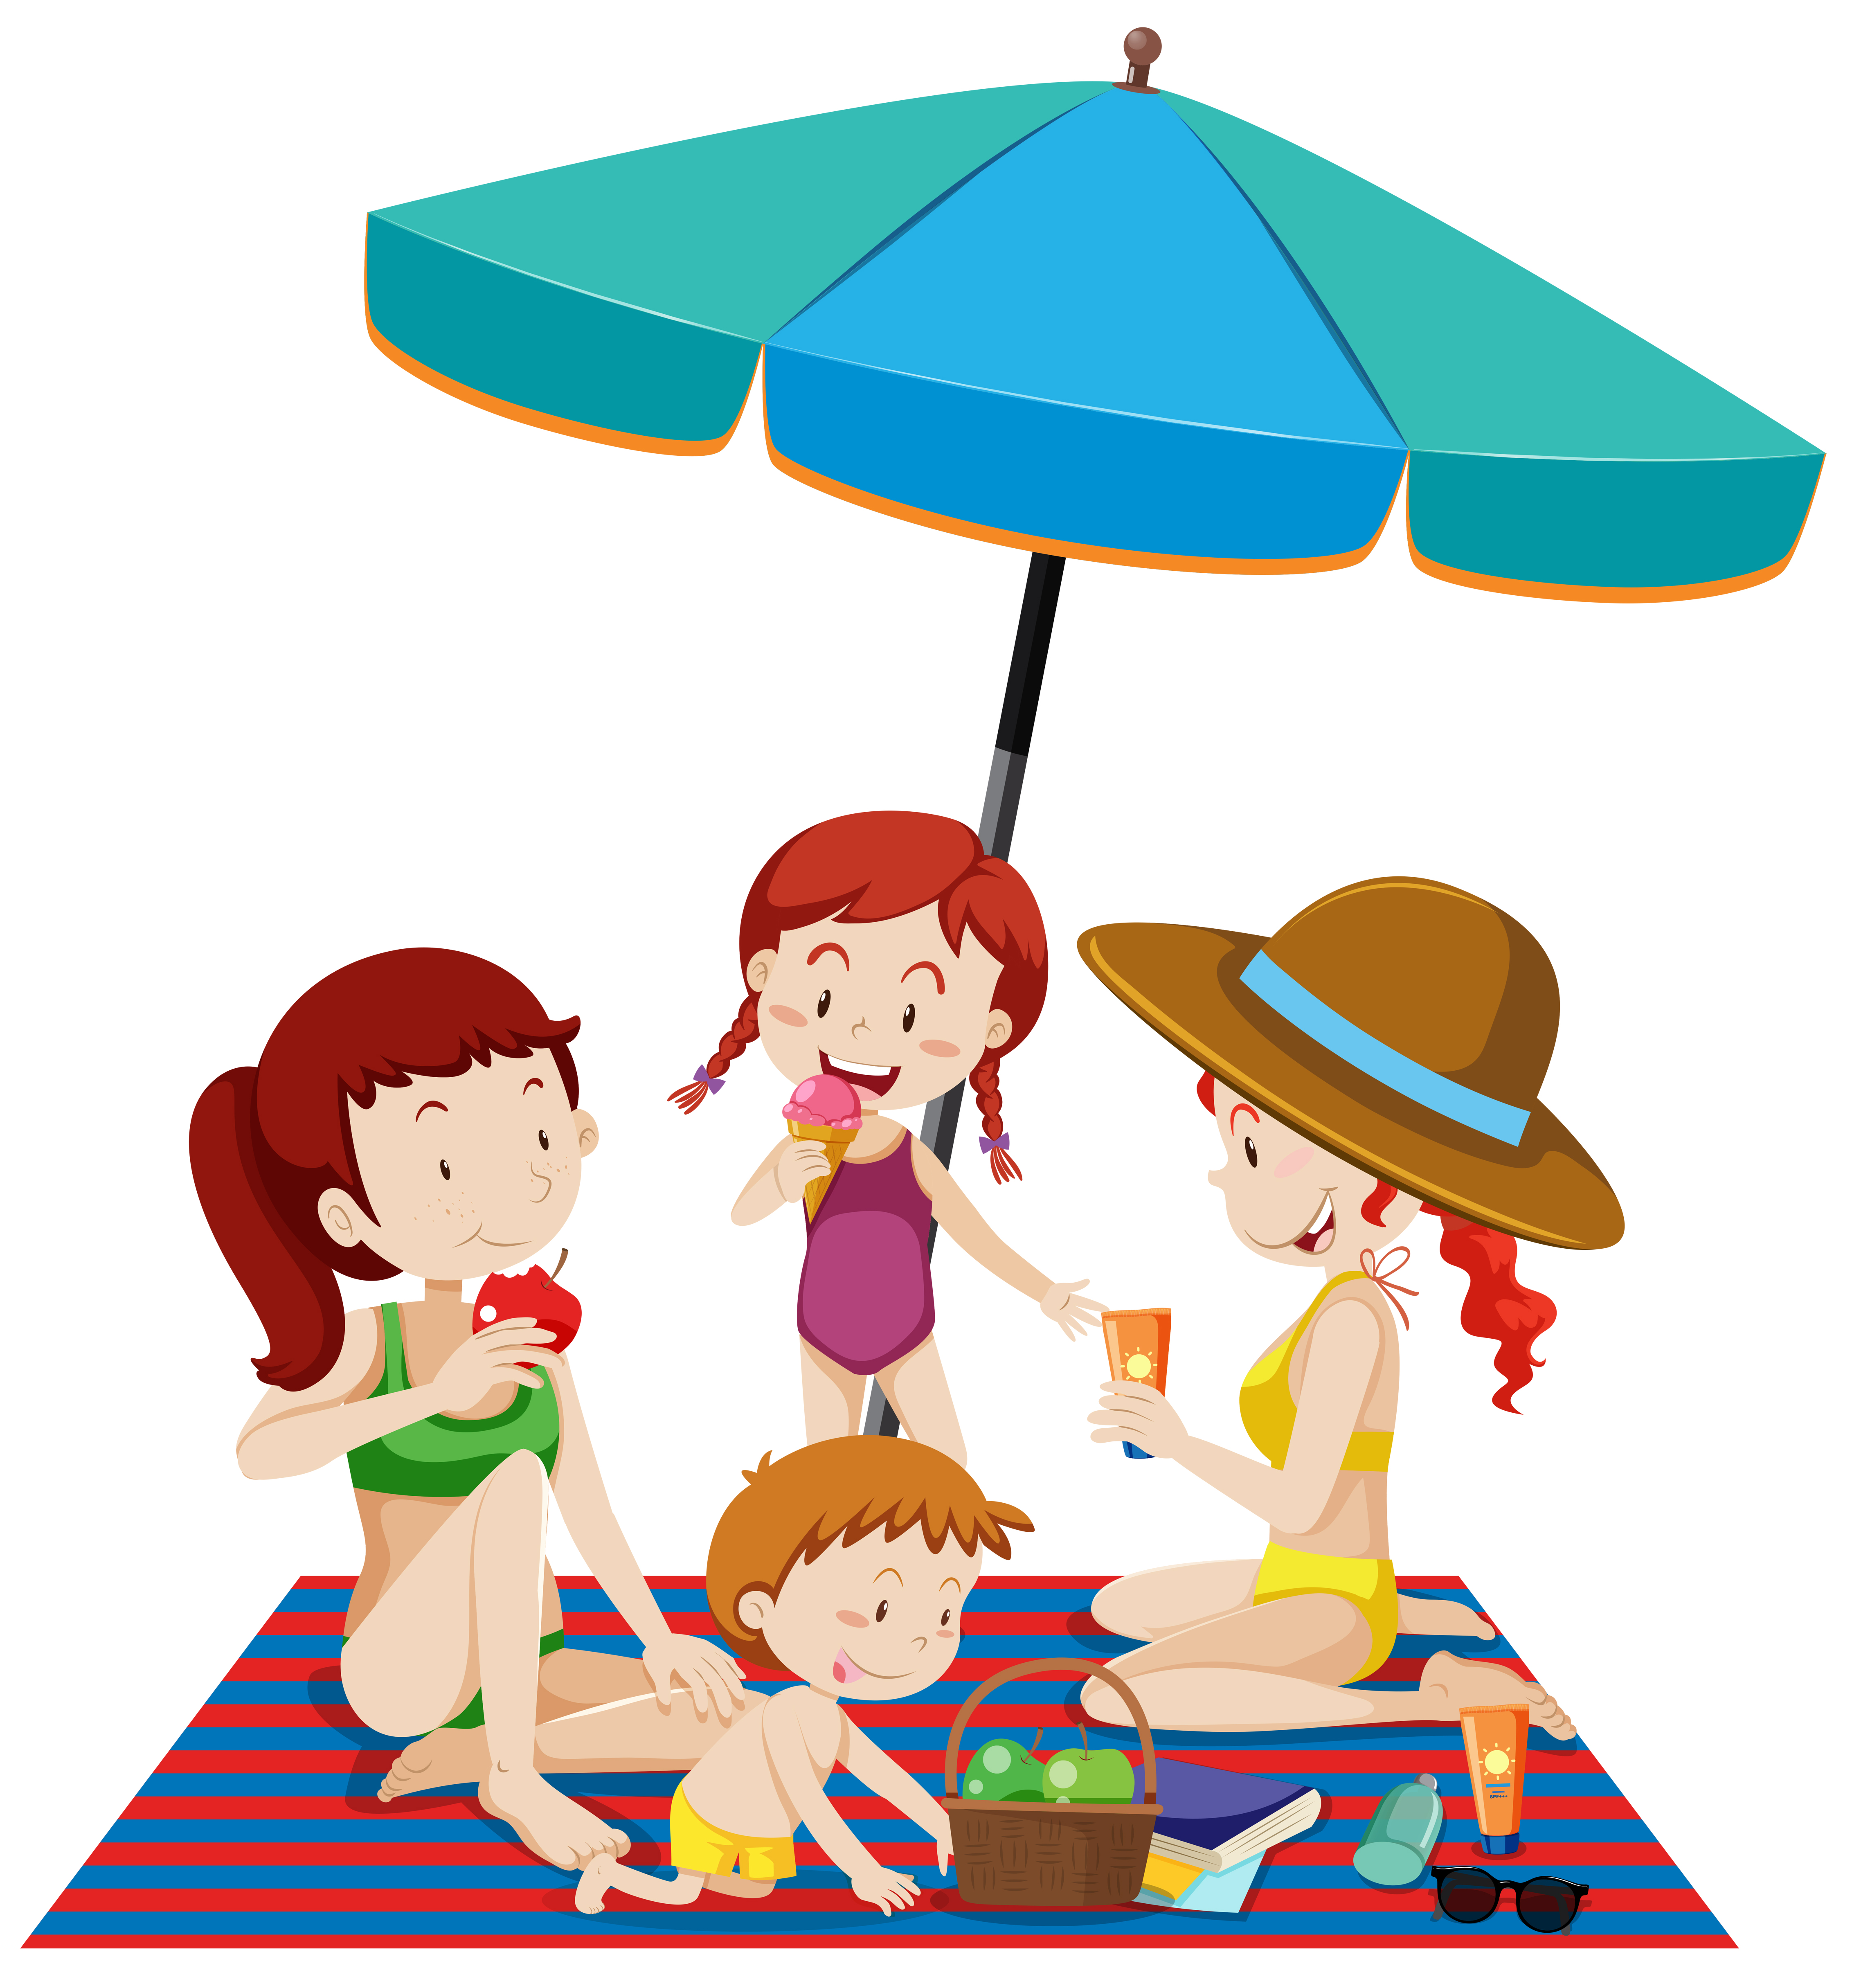 A Family at Beach Holiday - Download Free Vectors, Clipart ...